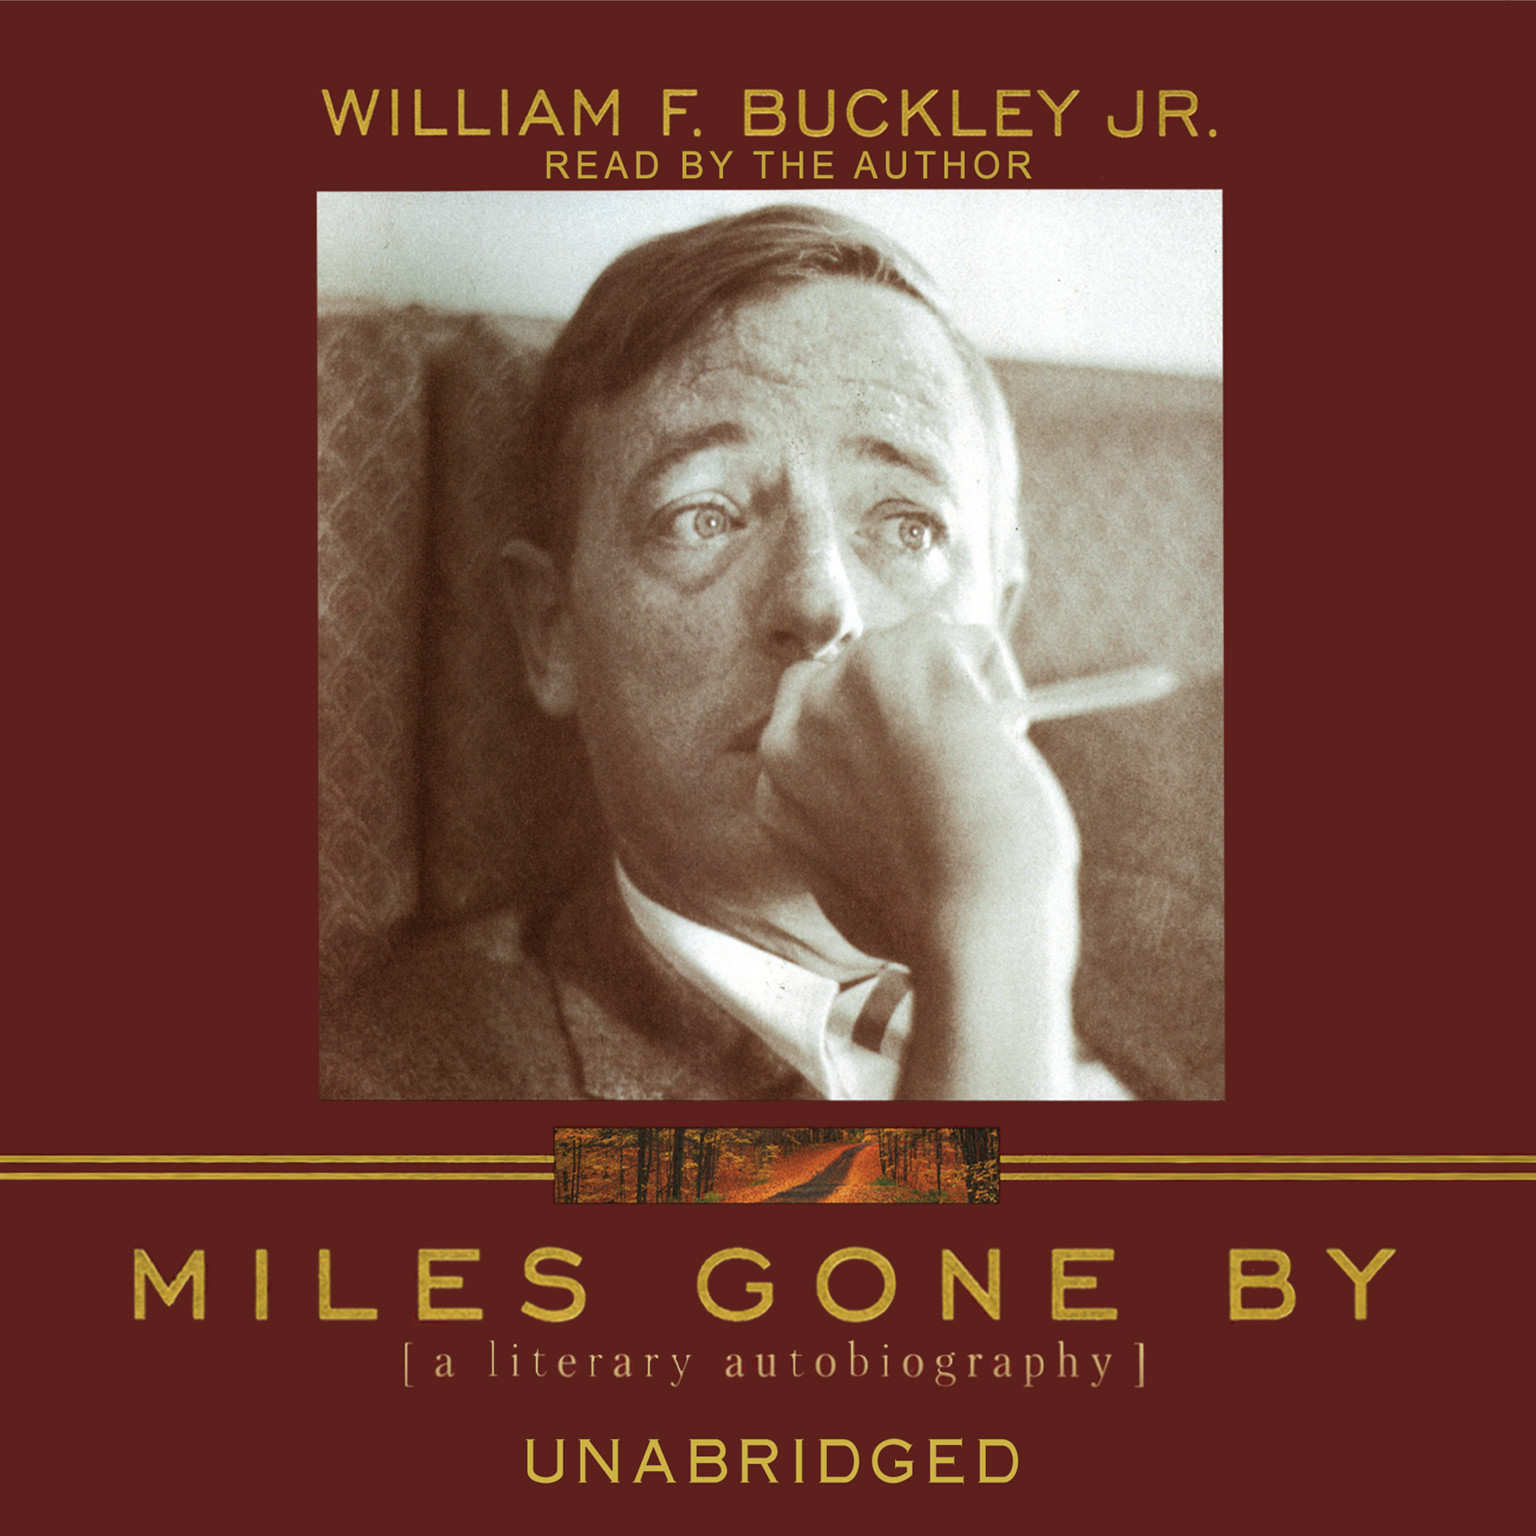 Printable Miles Gone By: A Literary Autobiography Audiobook Cover Art